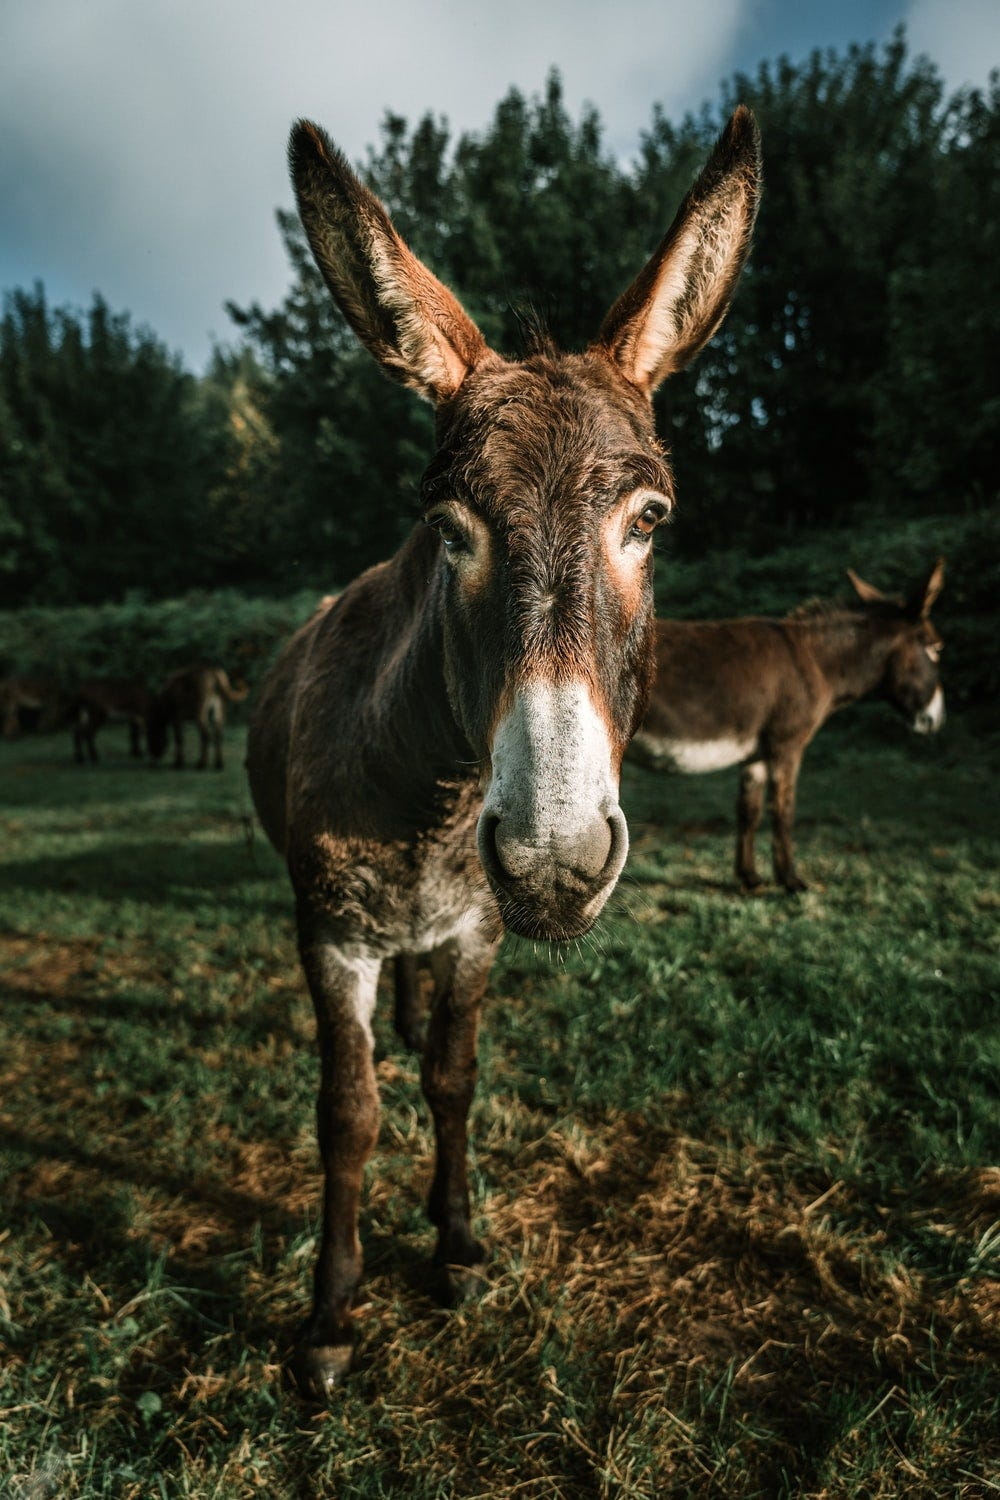 brown donkey on green grass during daytime